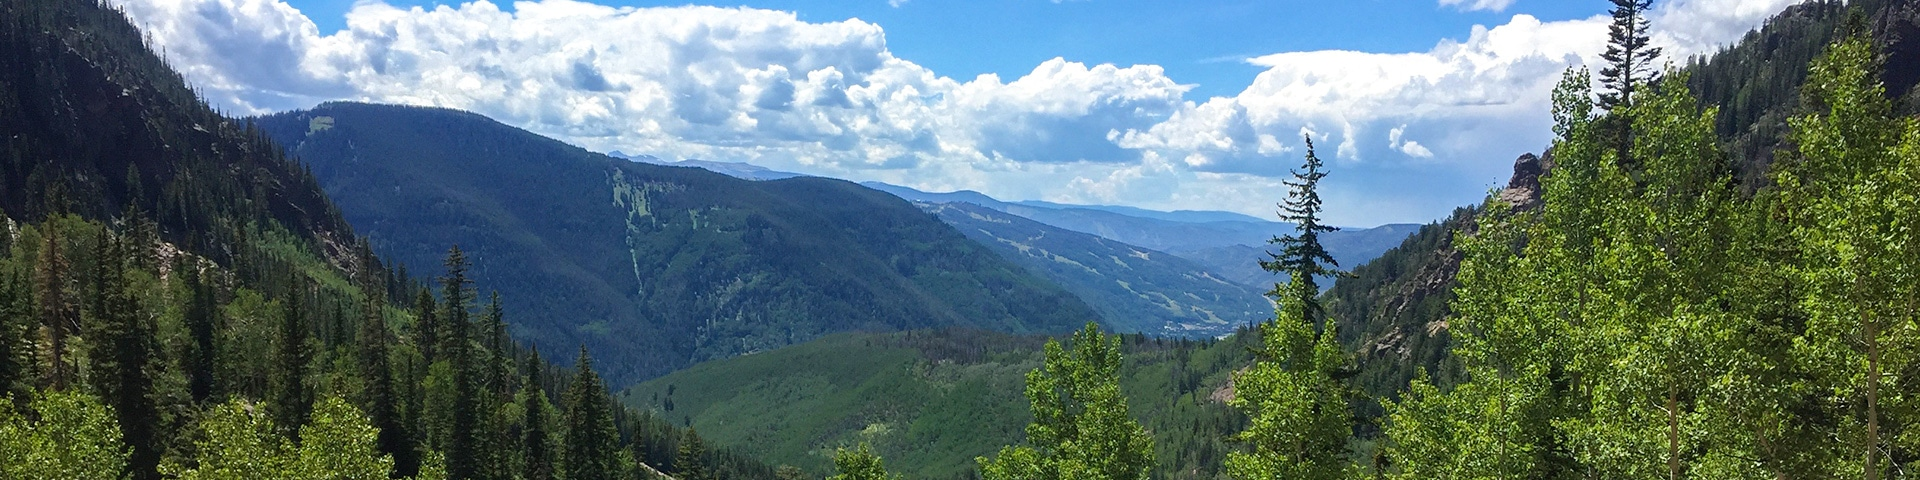 Panorama of the Bighorn Creek Trail hike in Vail, Colorado